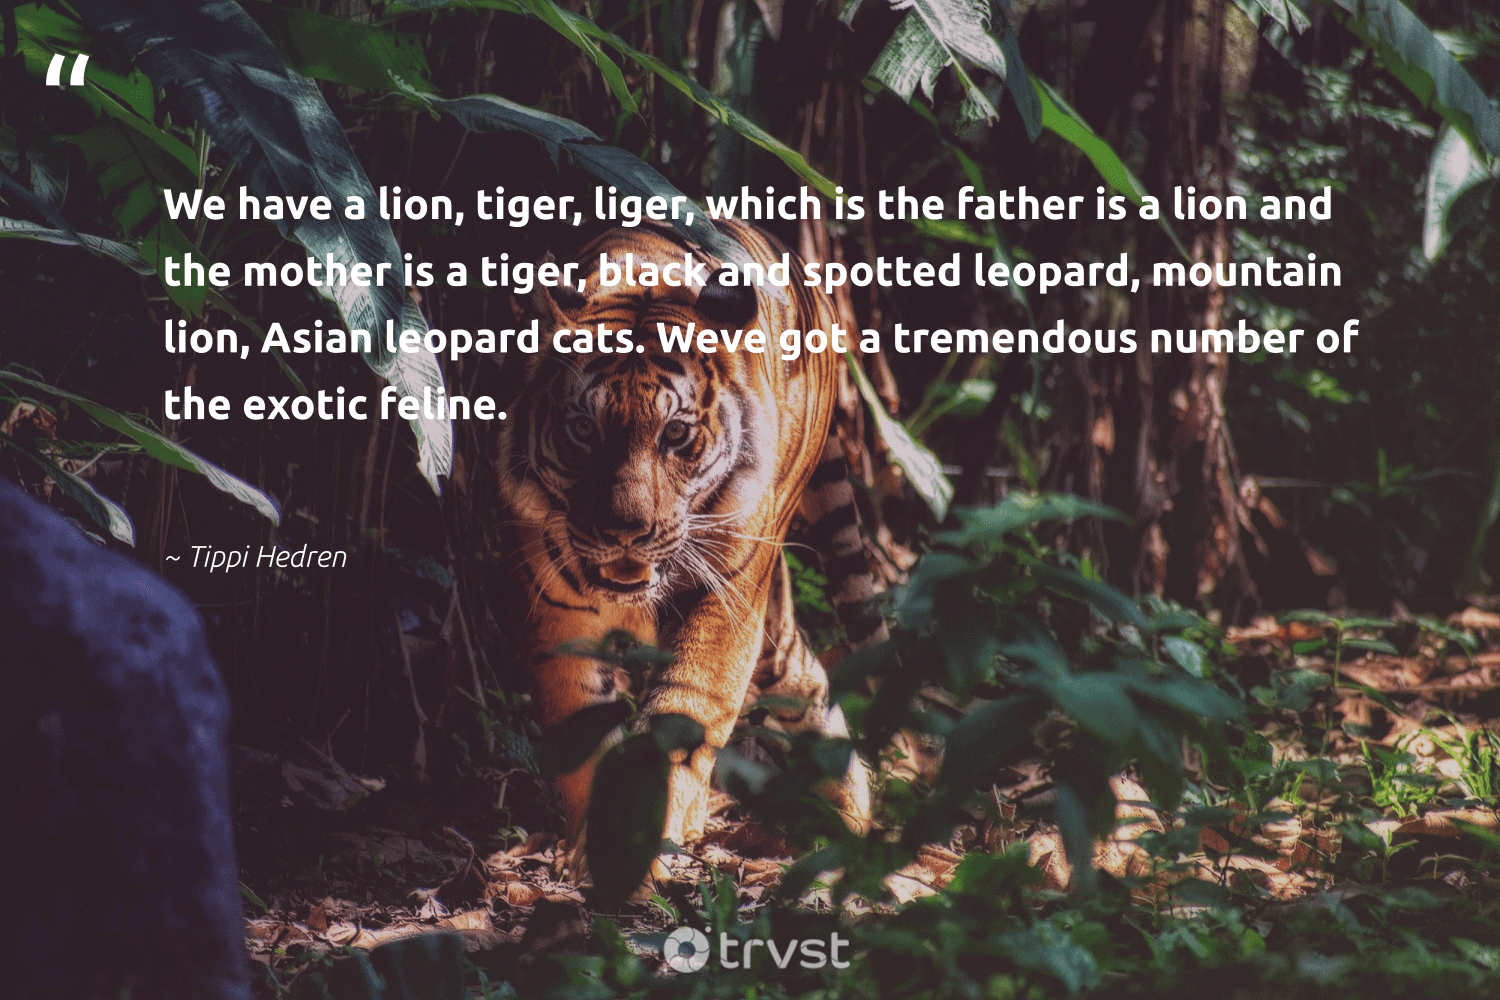 """""""We have a lion, tiger, liger, which is the father is a lion and the mother is a tiger, black and spotted leopard, mountain lion, Asian leopard cats. Weve got a tremendous number of the exotic feline.""""  - Tippi Hedren #trvst #quotes #mountain #tiger #leopard #lion #wildlifeprotection #gogreen #tigers #takeaction #ourplanetdaily #planetearthfirst"""